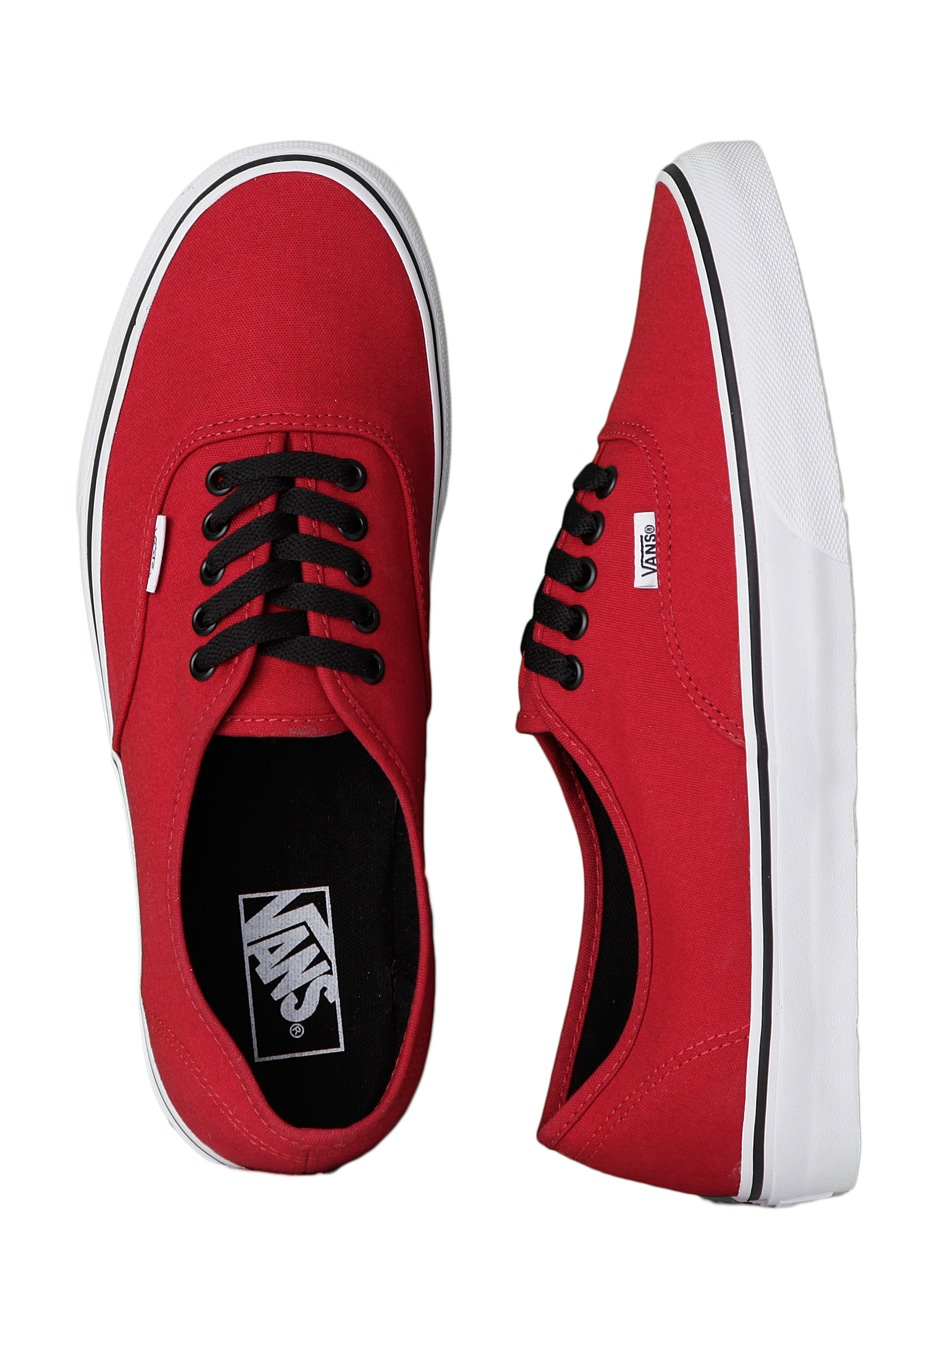 24e67e6d6f Vans - Authentic Chilli Pepper Black - Shoes - Impericon.com Worldwide